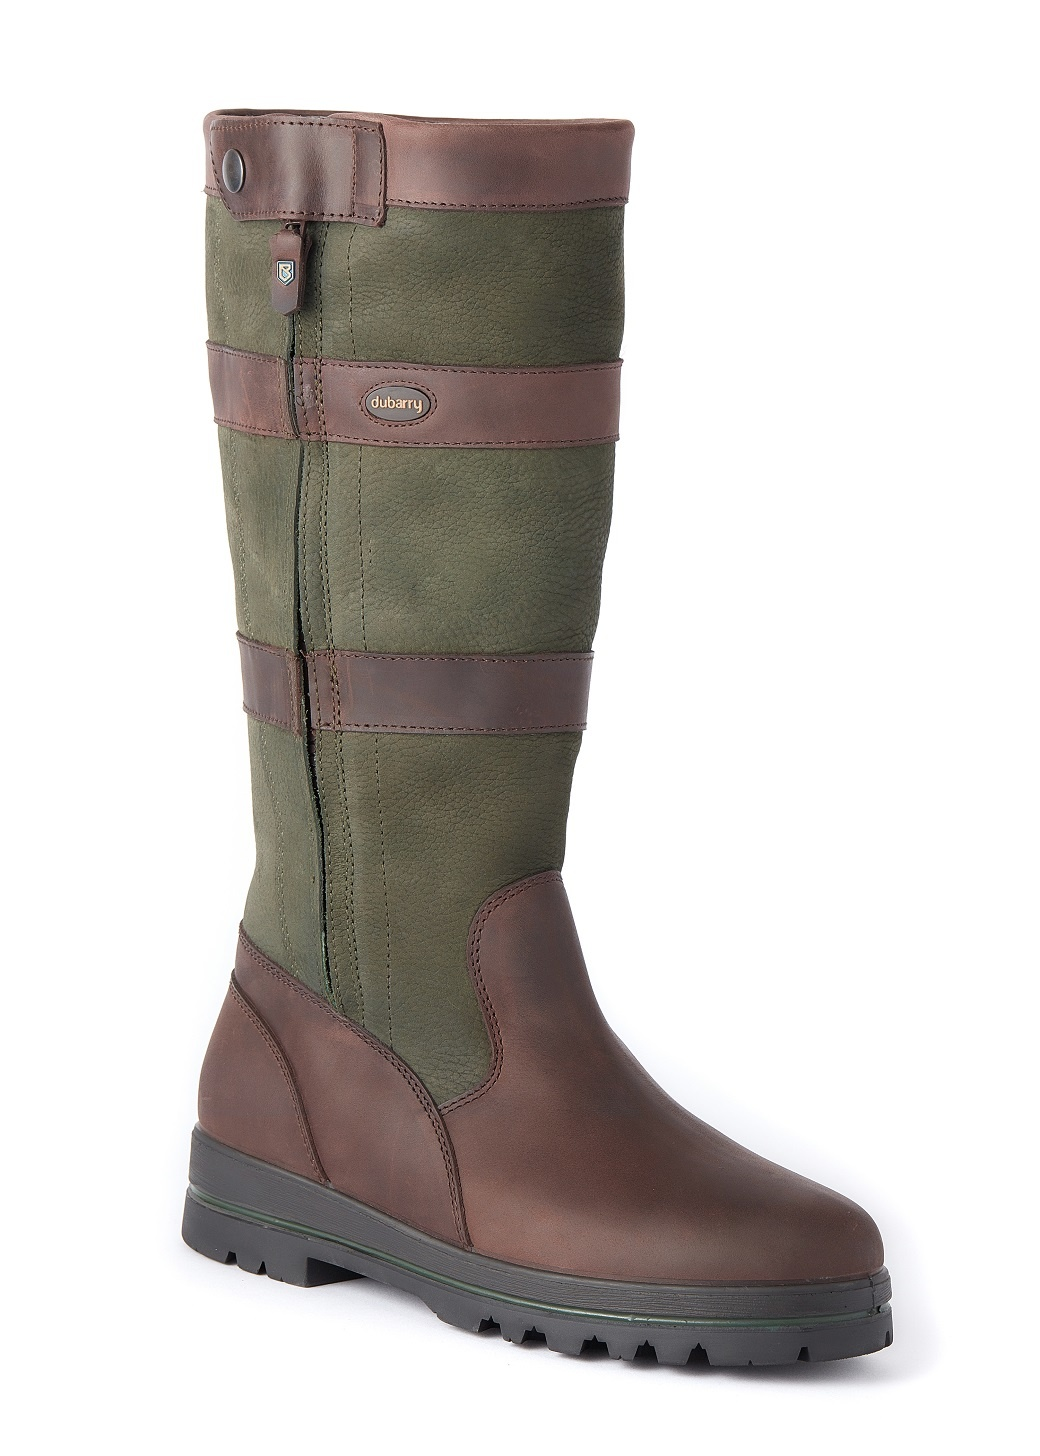 Dubarry Wexford - Ivy-4